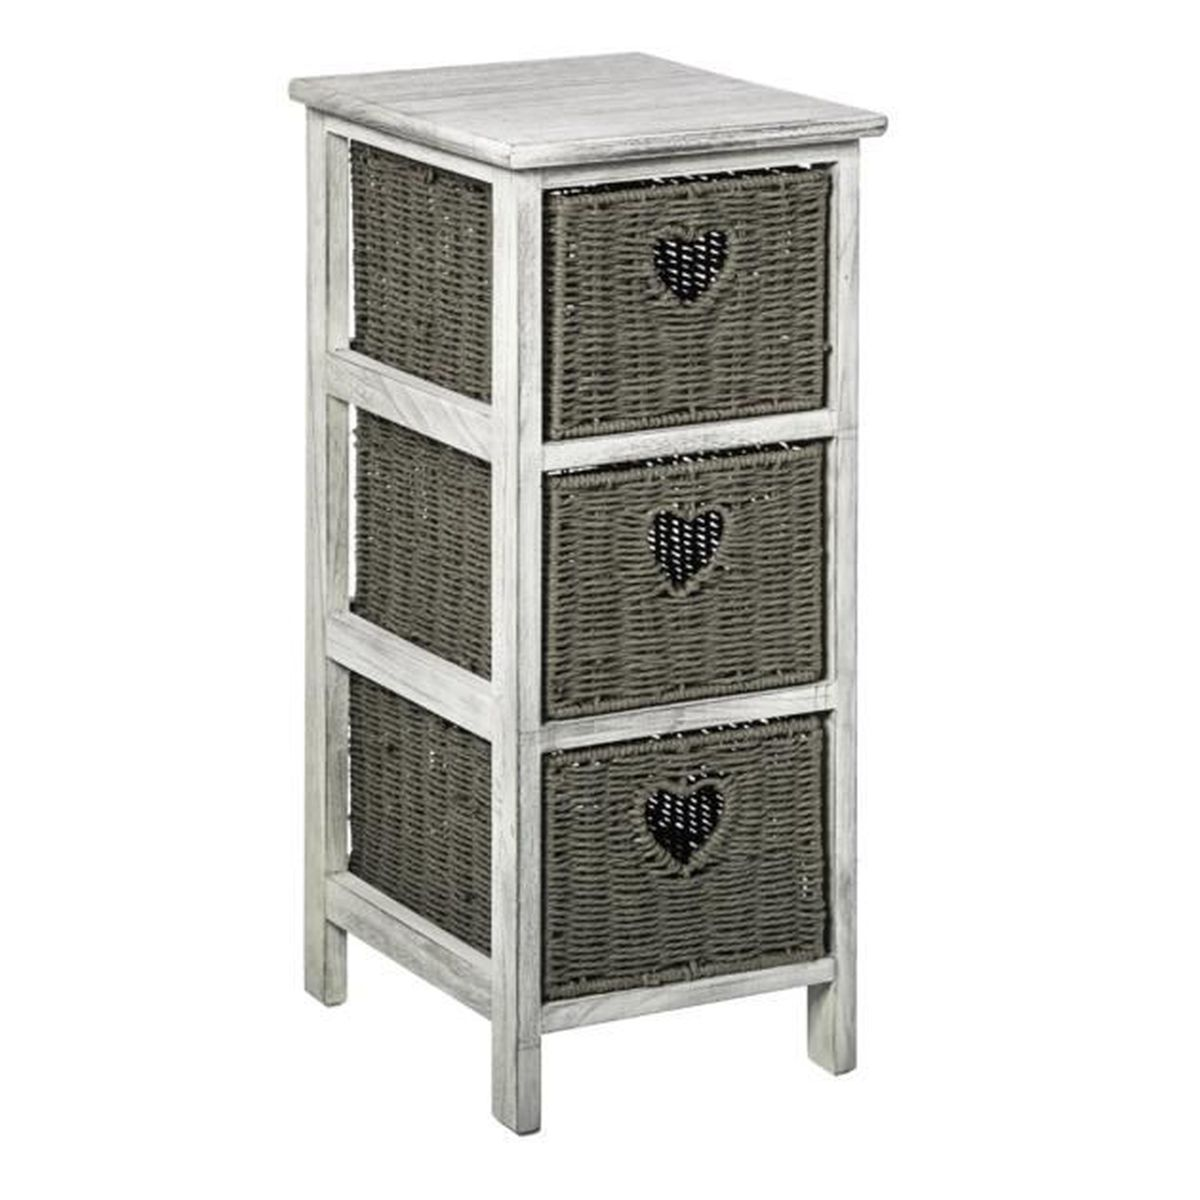 chiffonnier en osier achat vente chiffonnier en osier pas cher cdiscount. Black Bedroom Furniture Sets. Home Design Ideas